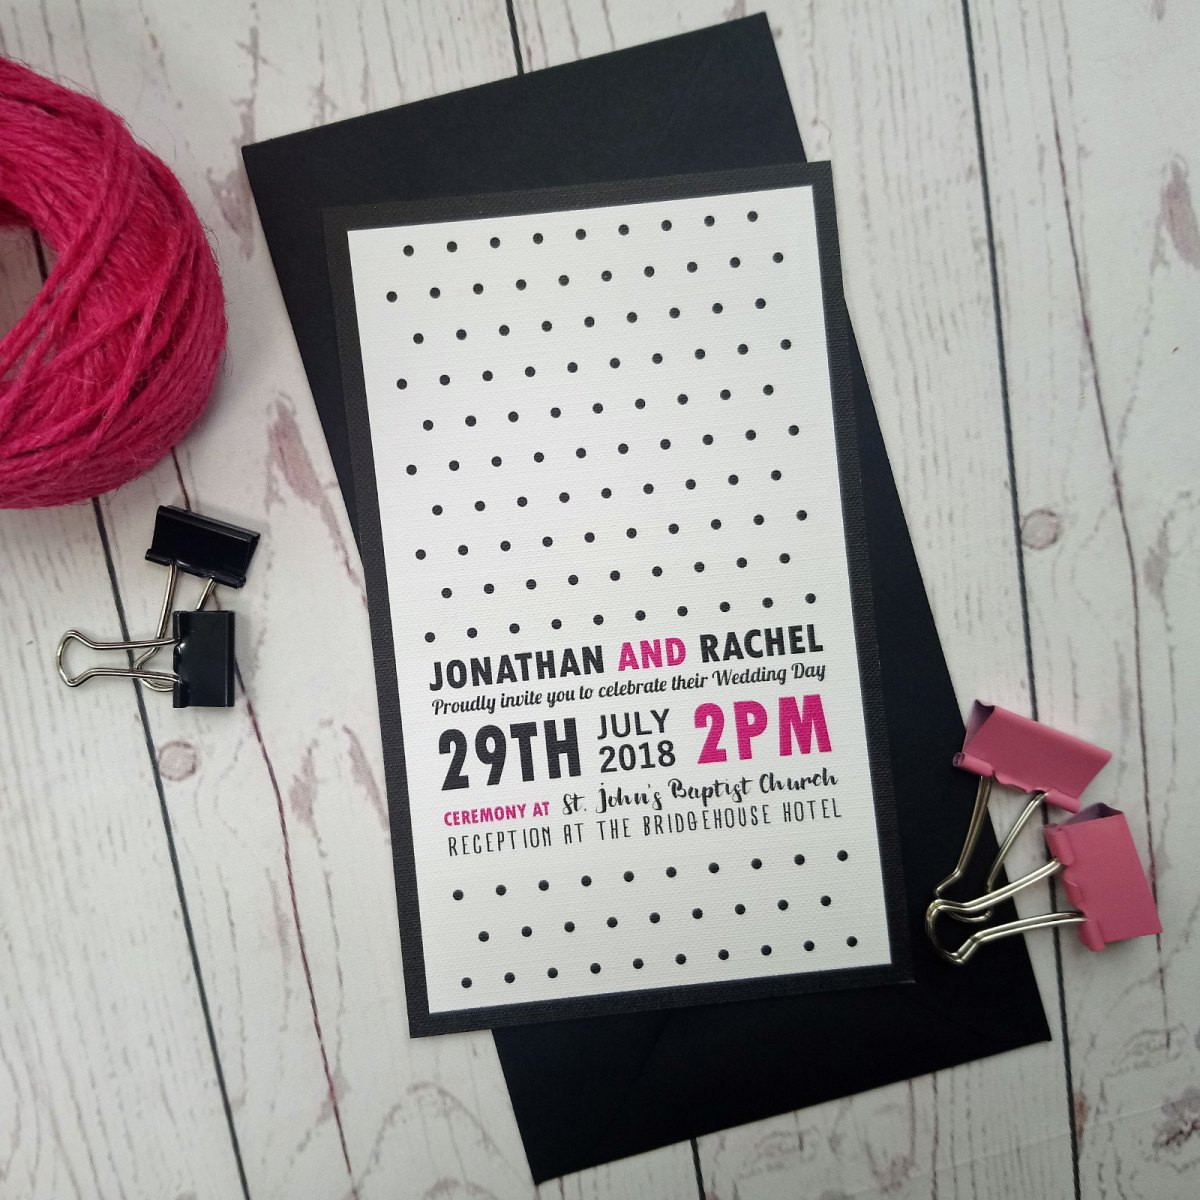 RSVP card in the classic polka dot style. Black and fuchsia font on white textured card with matching black envelope.